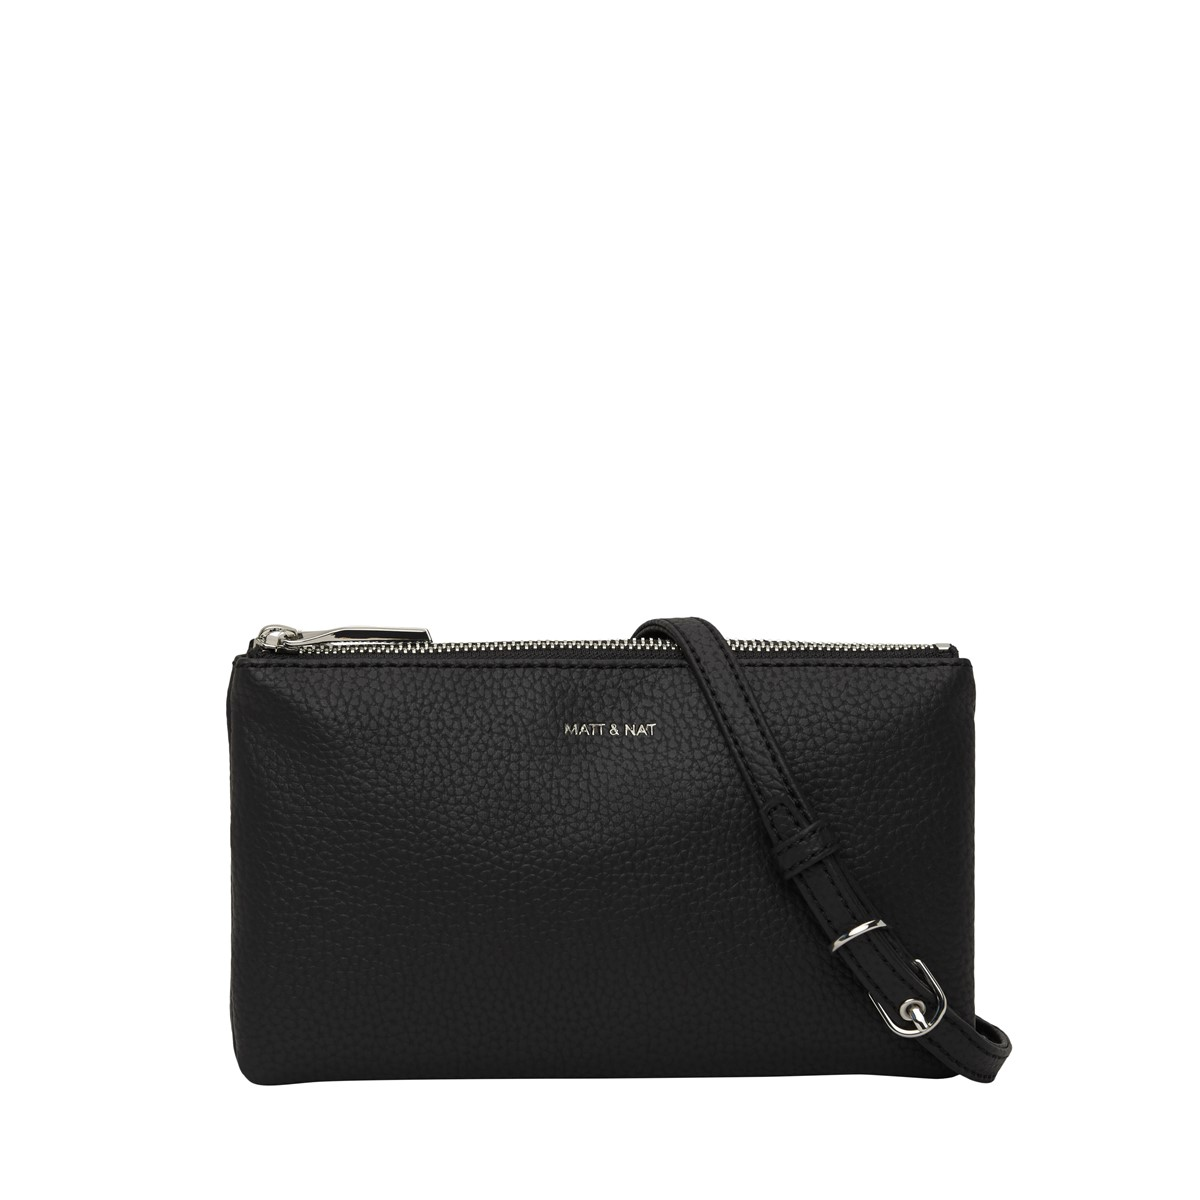 Triplet Crossbody Bag in Black